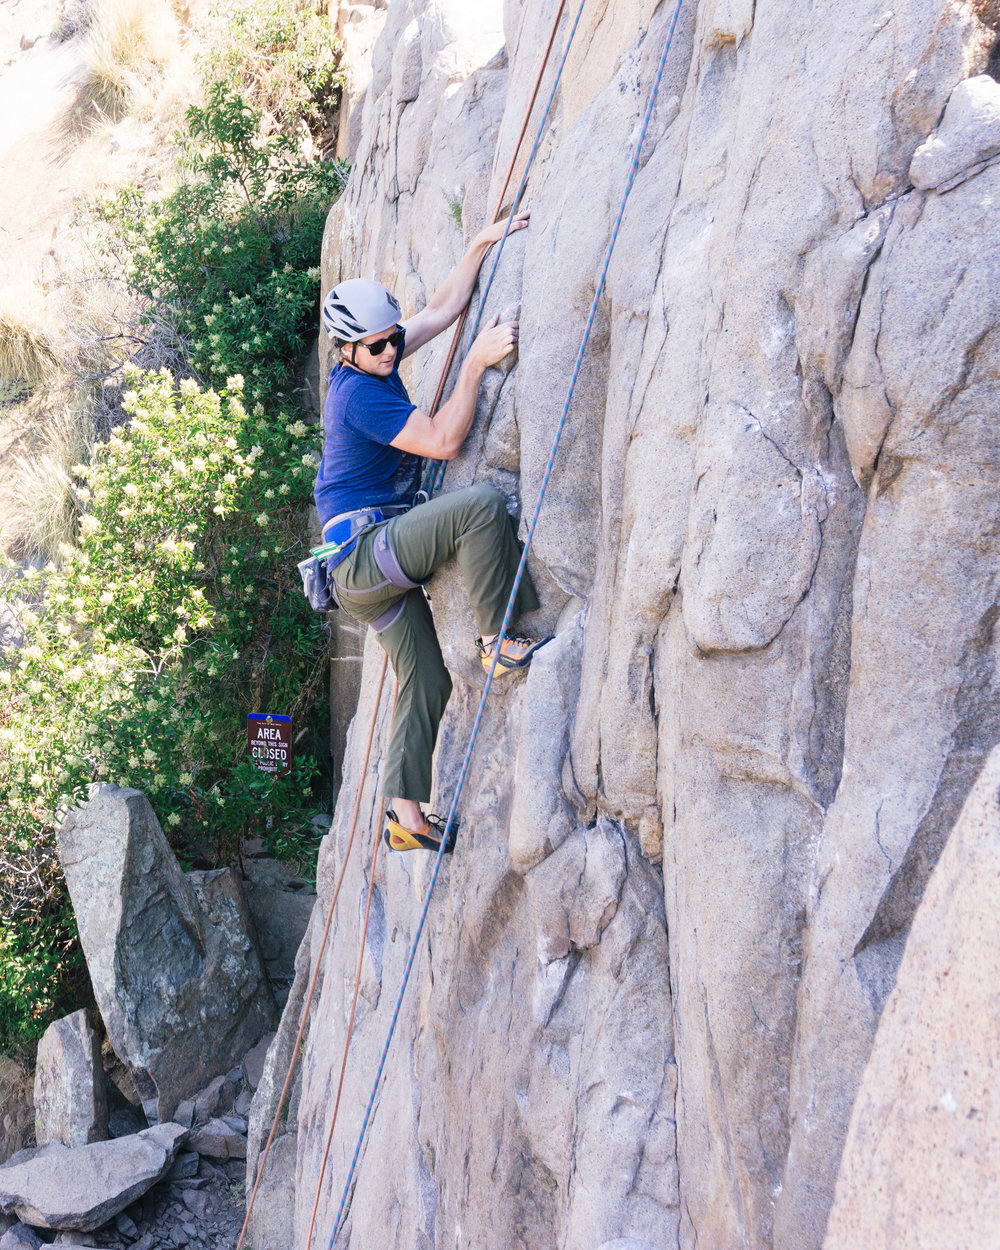 Rock climbing in mission gorge, san diego county.